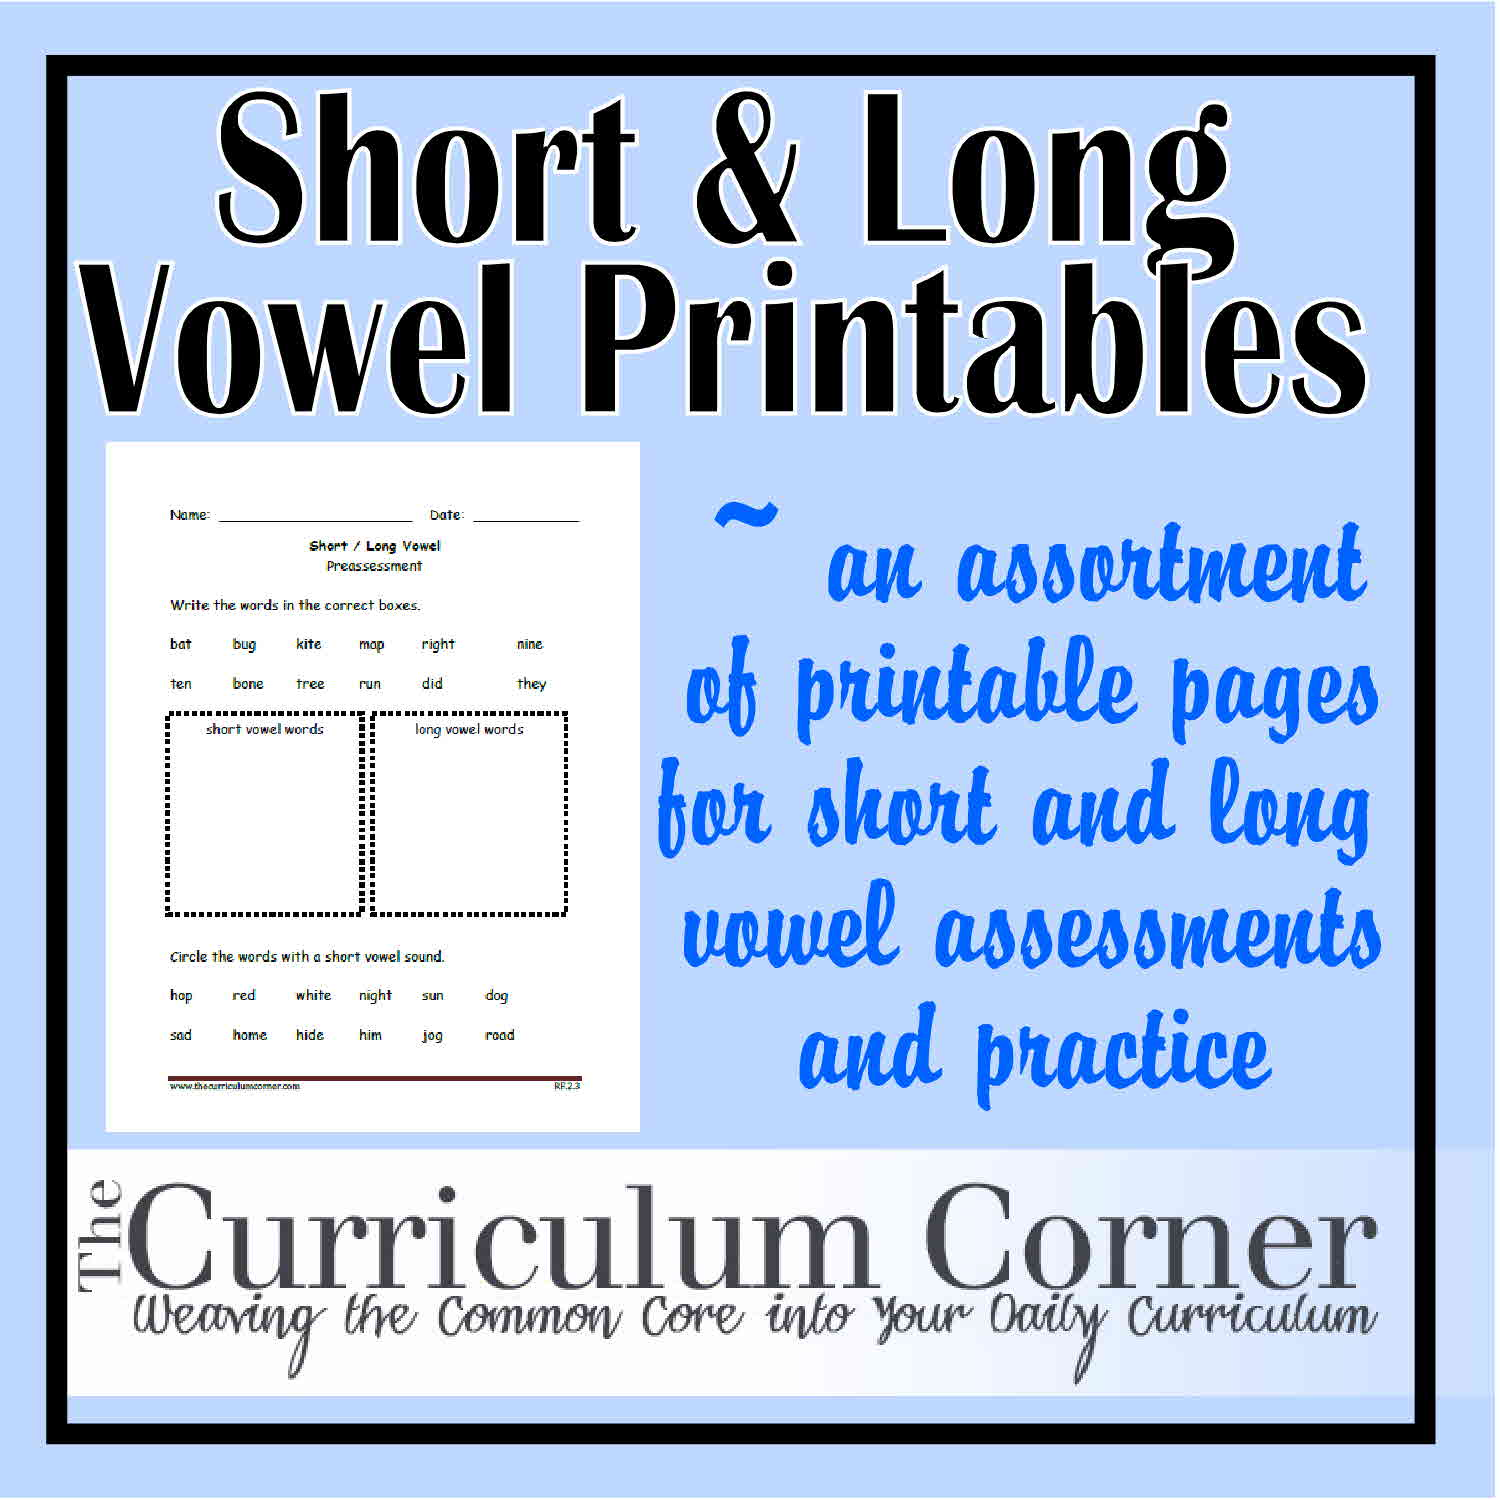 Short and Long Vowel Sound Printables - The Curriculum Corner 123